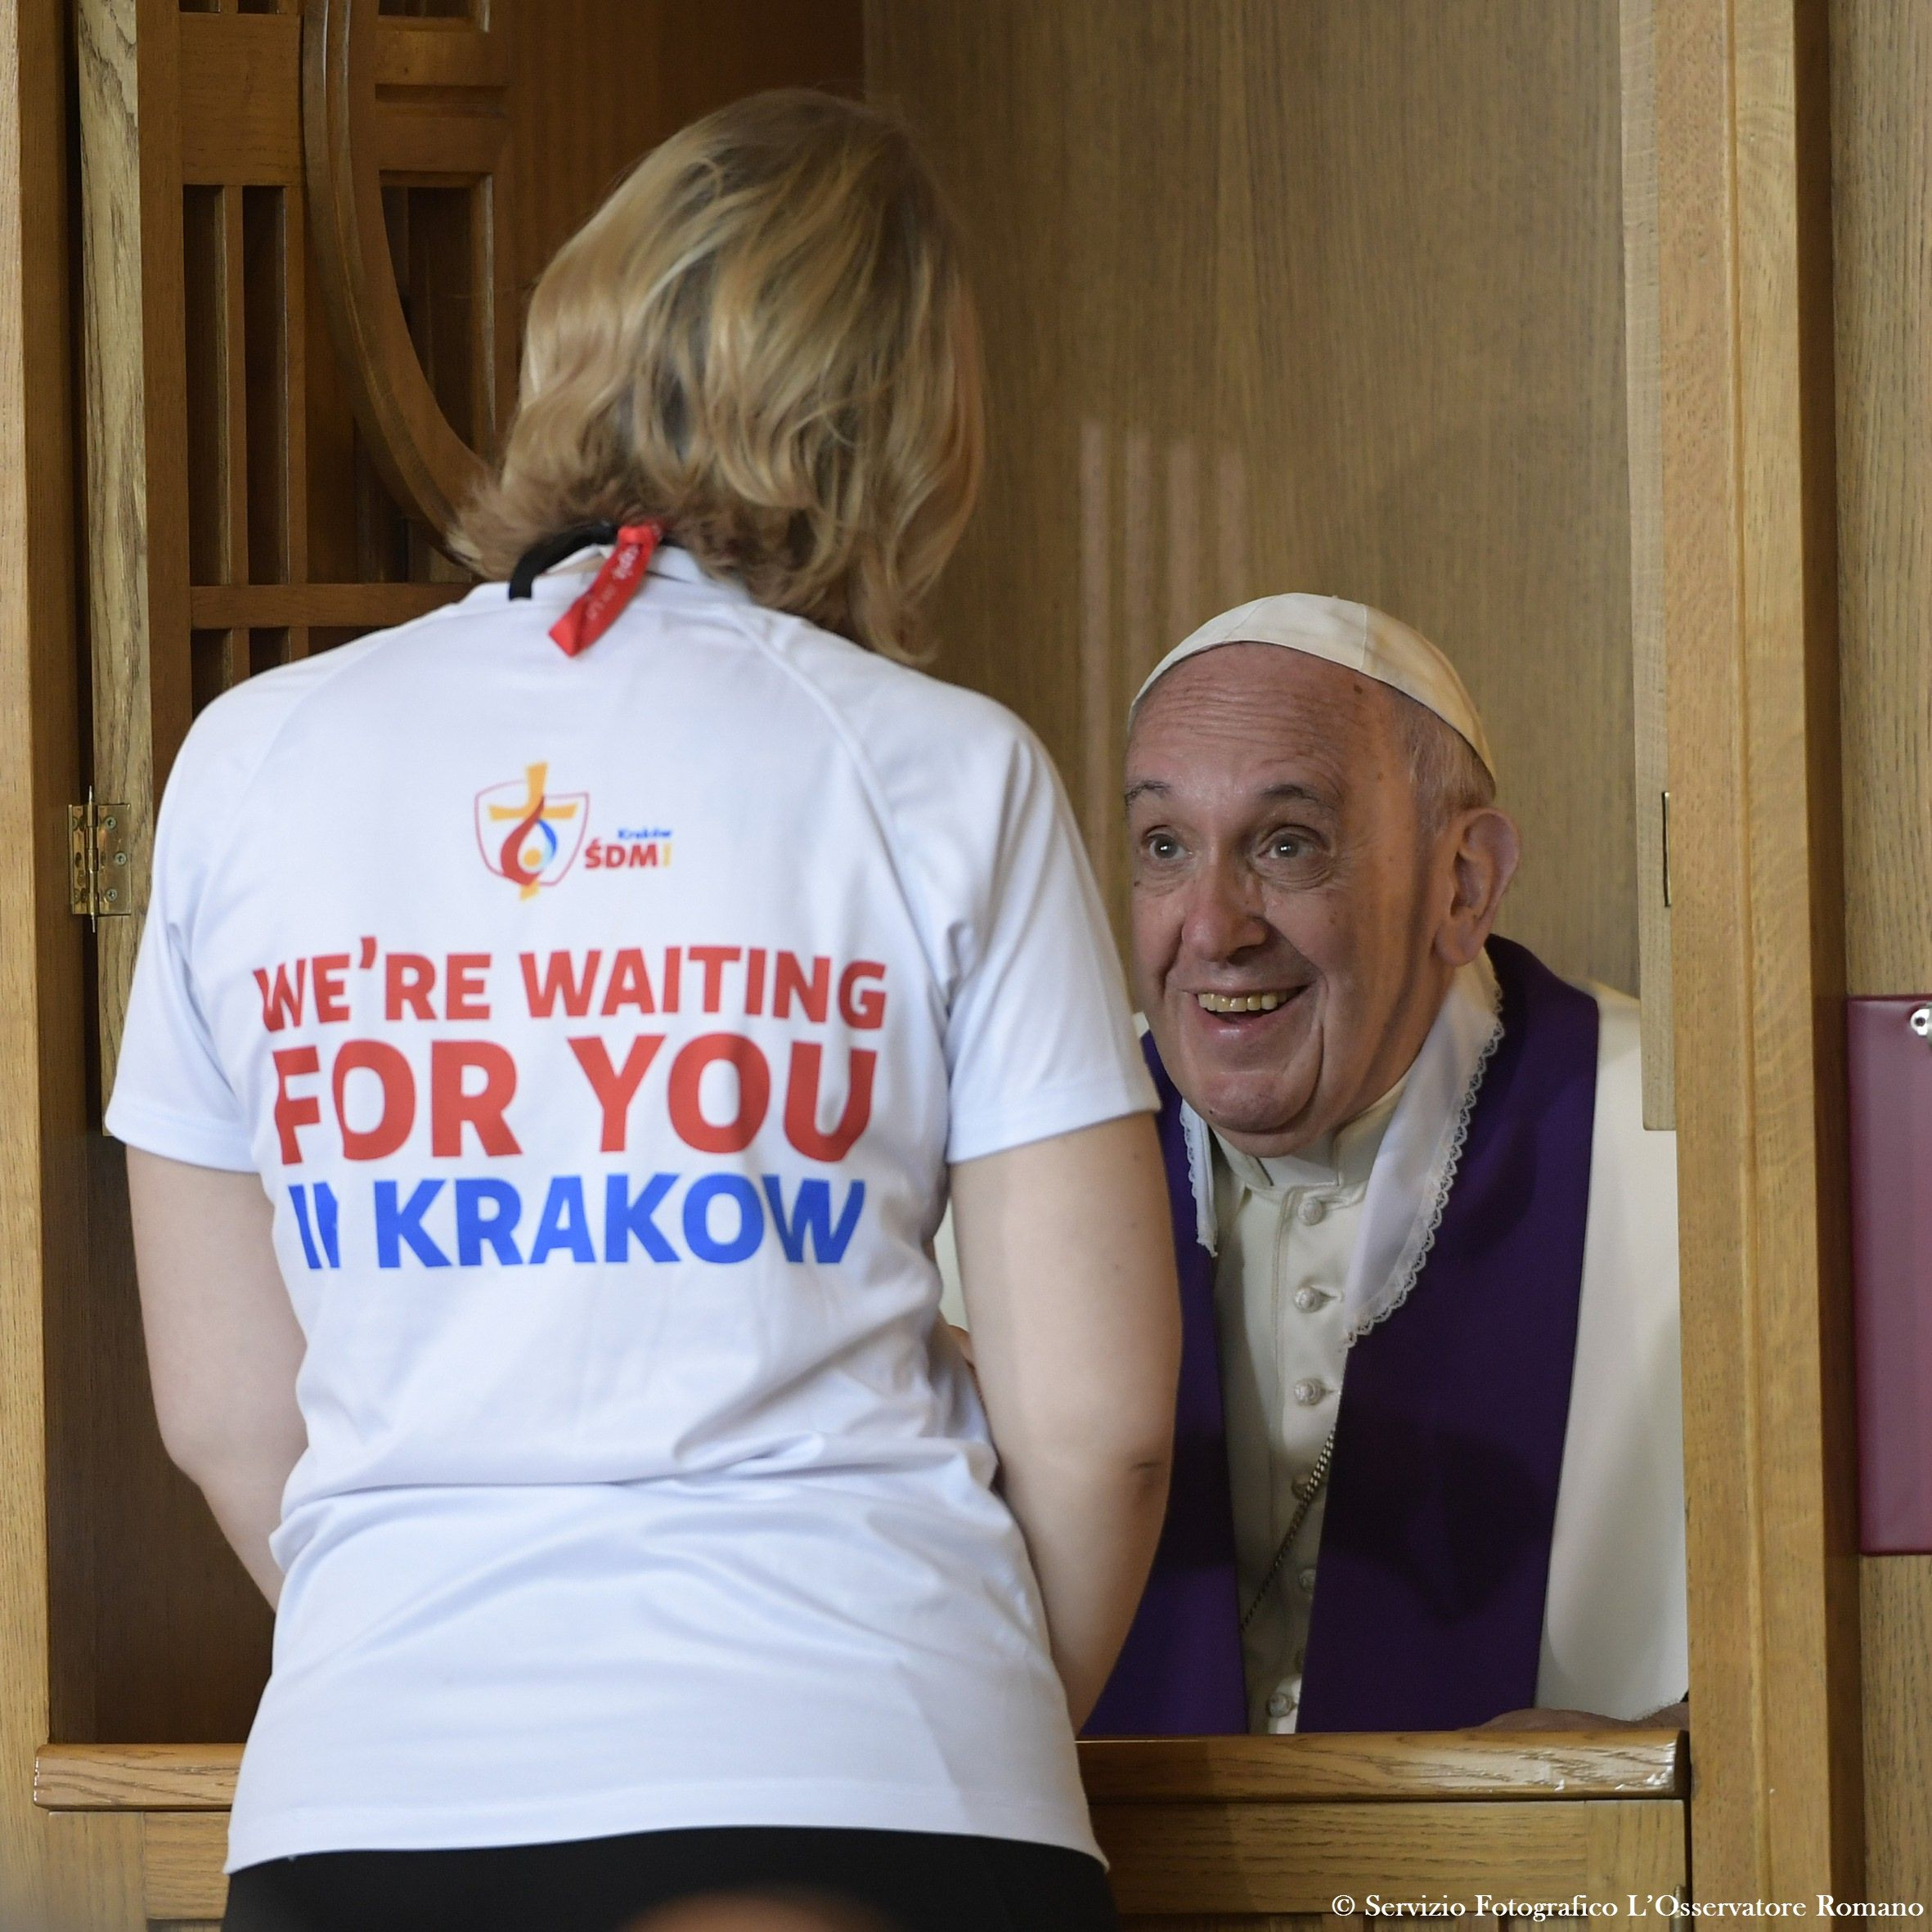 This handout released by Osservatore Romano shows Pope Francis confesseing a youth at the Divine Mercy Sanctuary on July 30, 2016 in Krakow-Lagiewniki as part of the World Youth Days (WYD). Pope Francis is in Poland for an international Catholic youth festival with a mission to encourage openness to migrants. HO / OSSERVATORE ROMANO / AFP